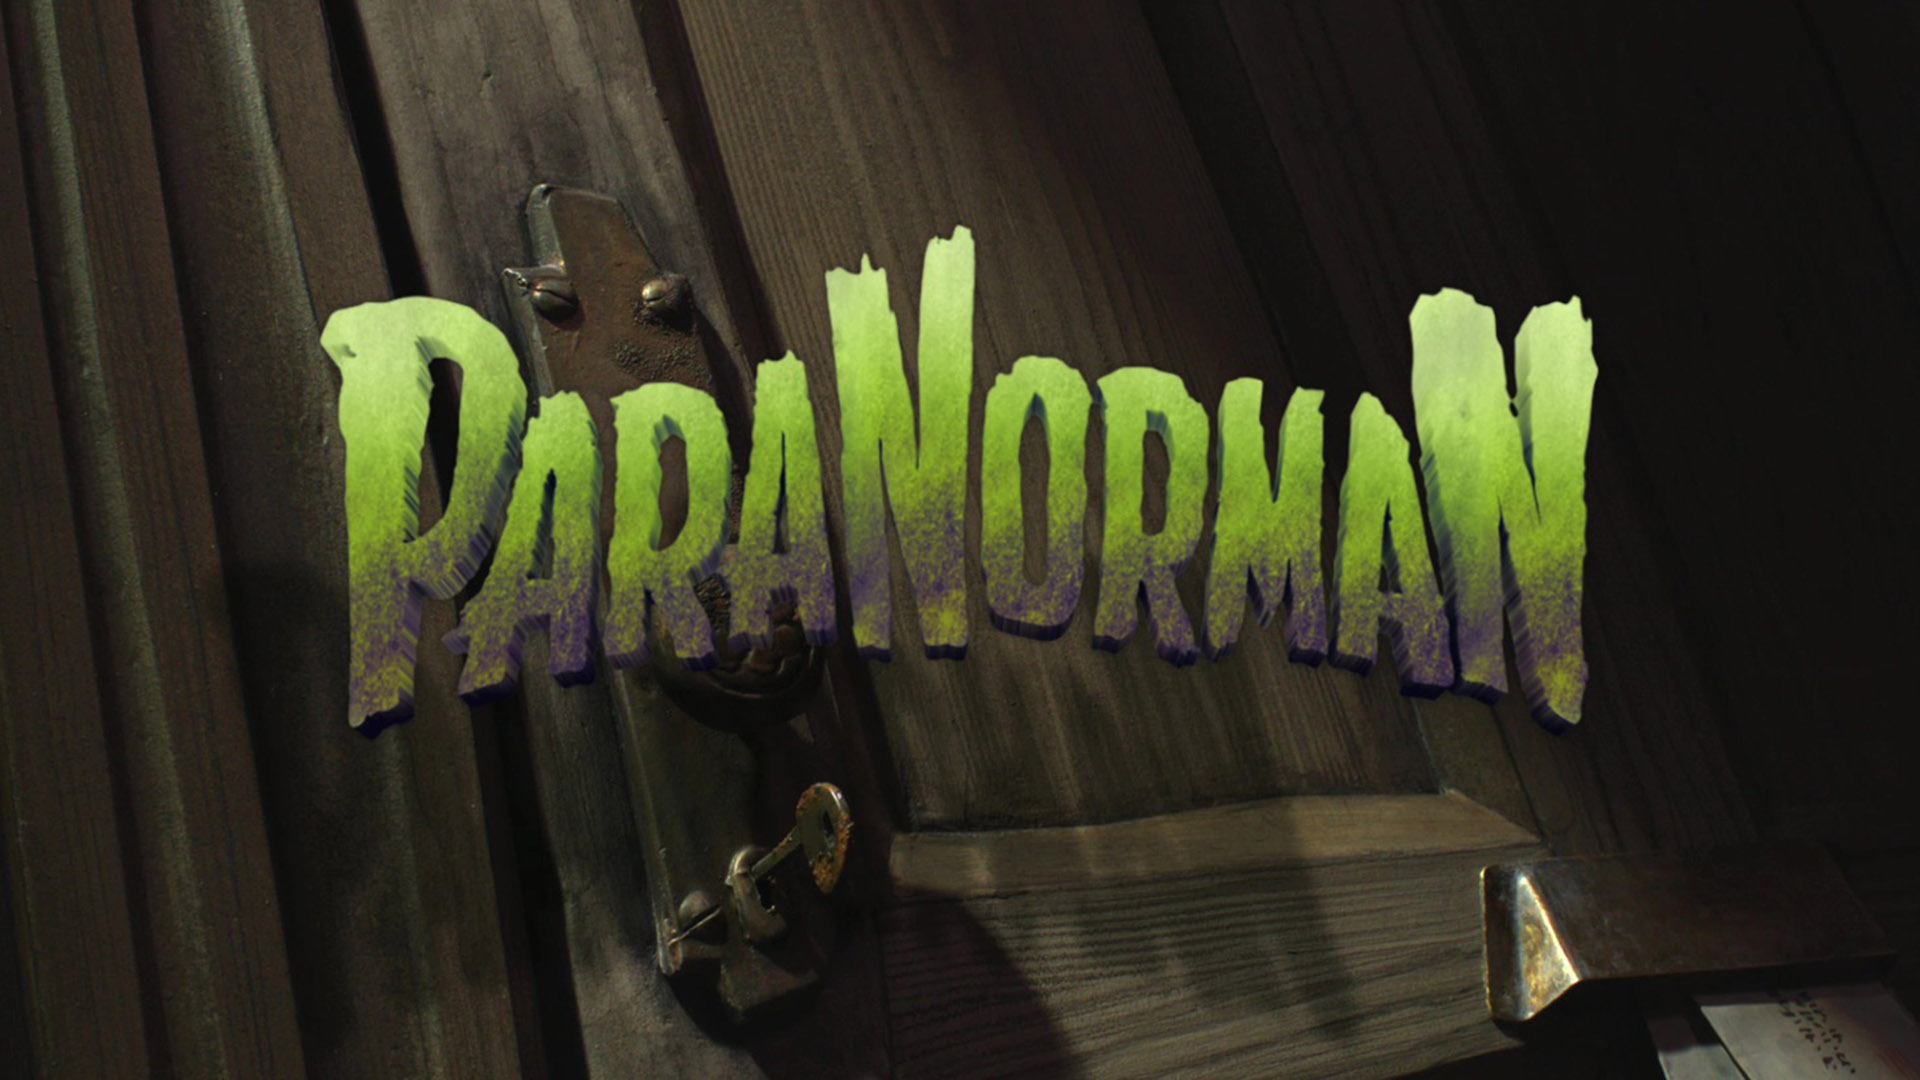 ParaNorman TheWallpapers | Free Desktop Wallpapers for HD ...